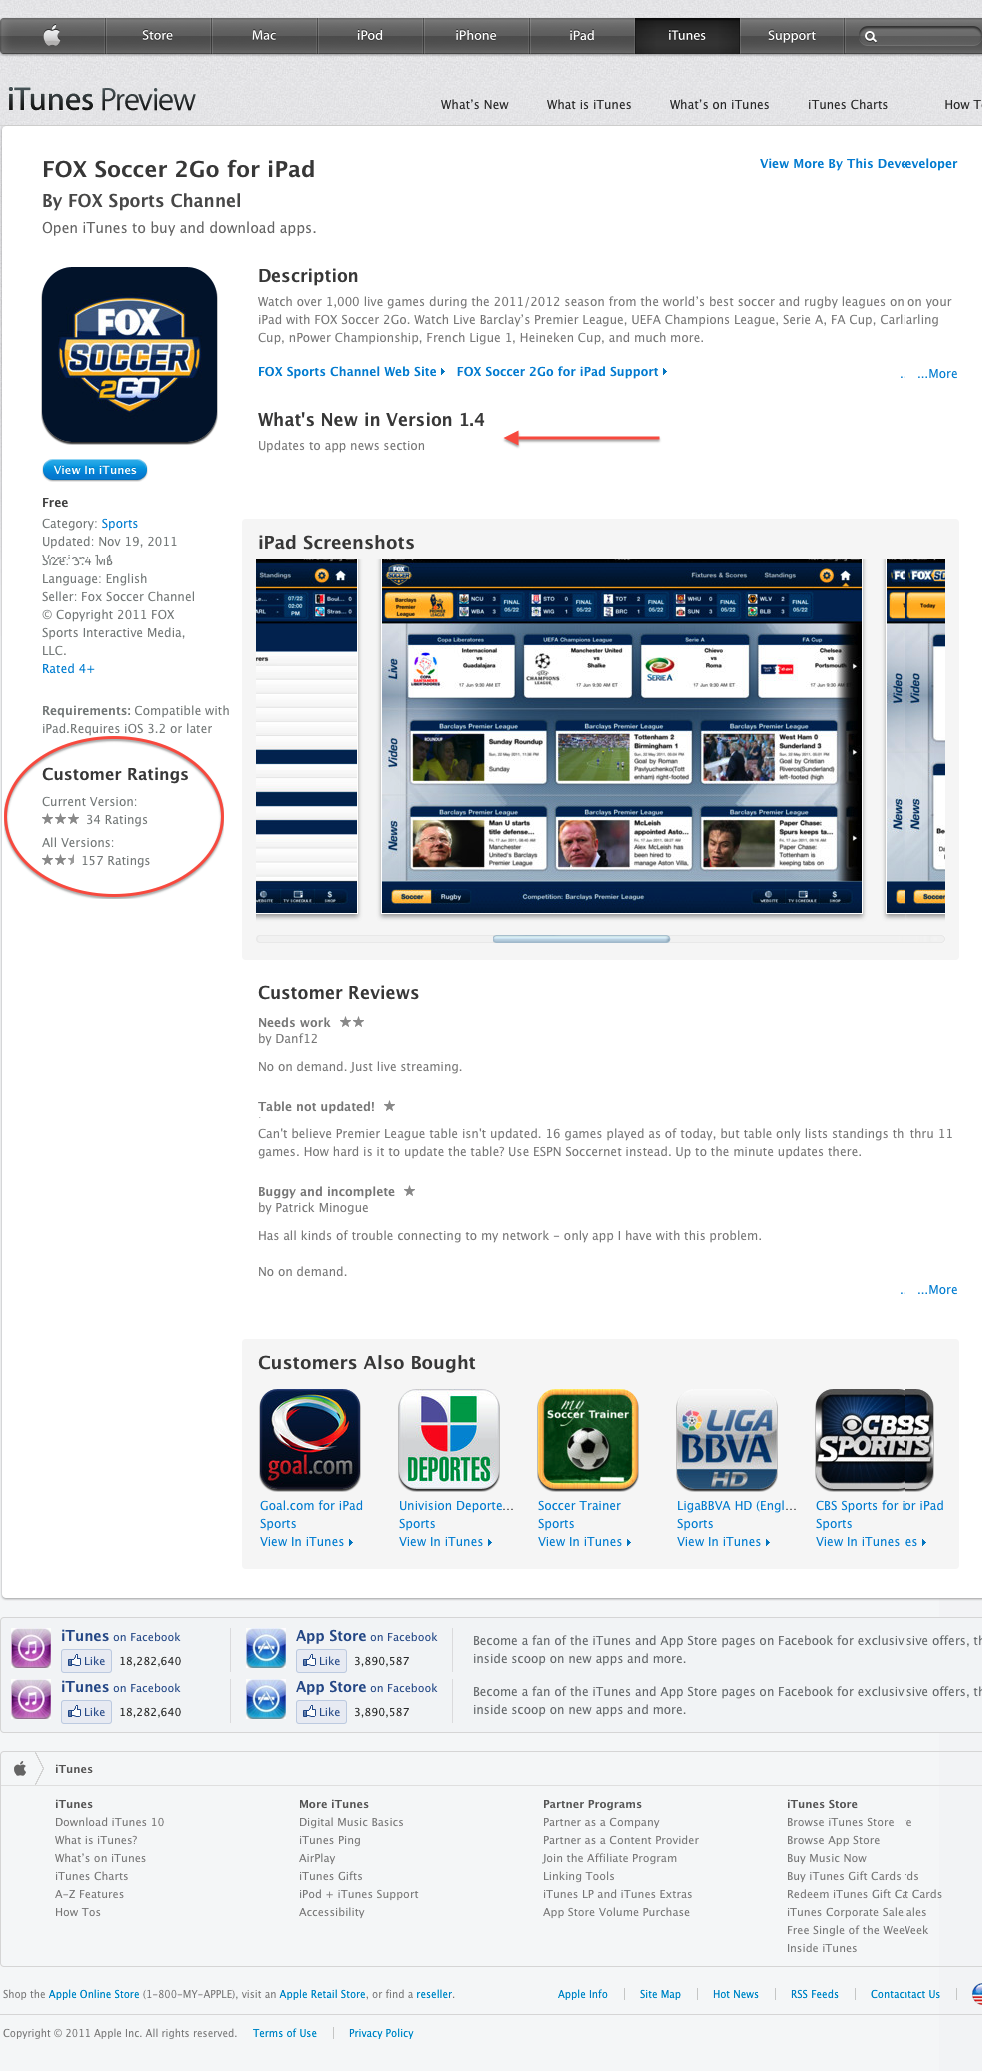 FOX Soccer 2Go for iPad for iPad on the iTunes App Store